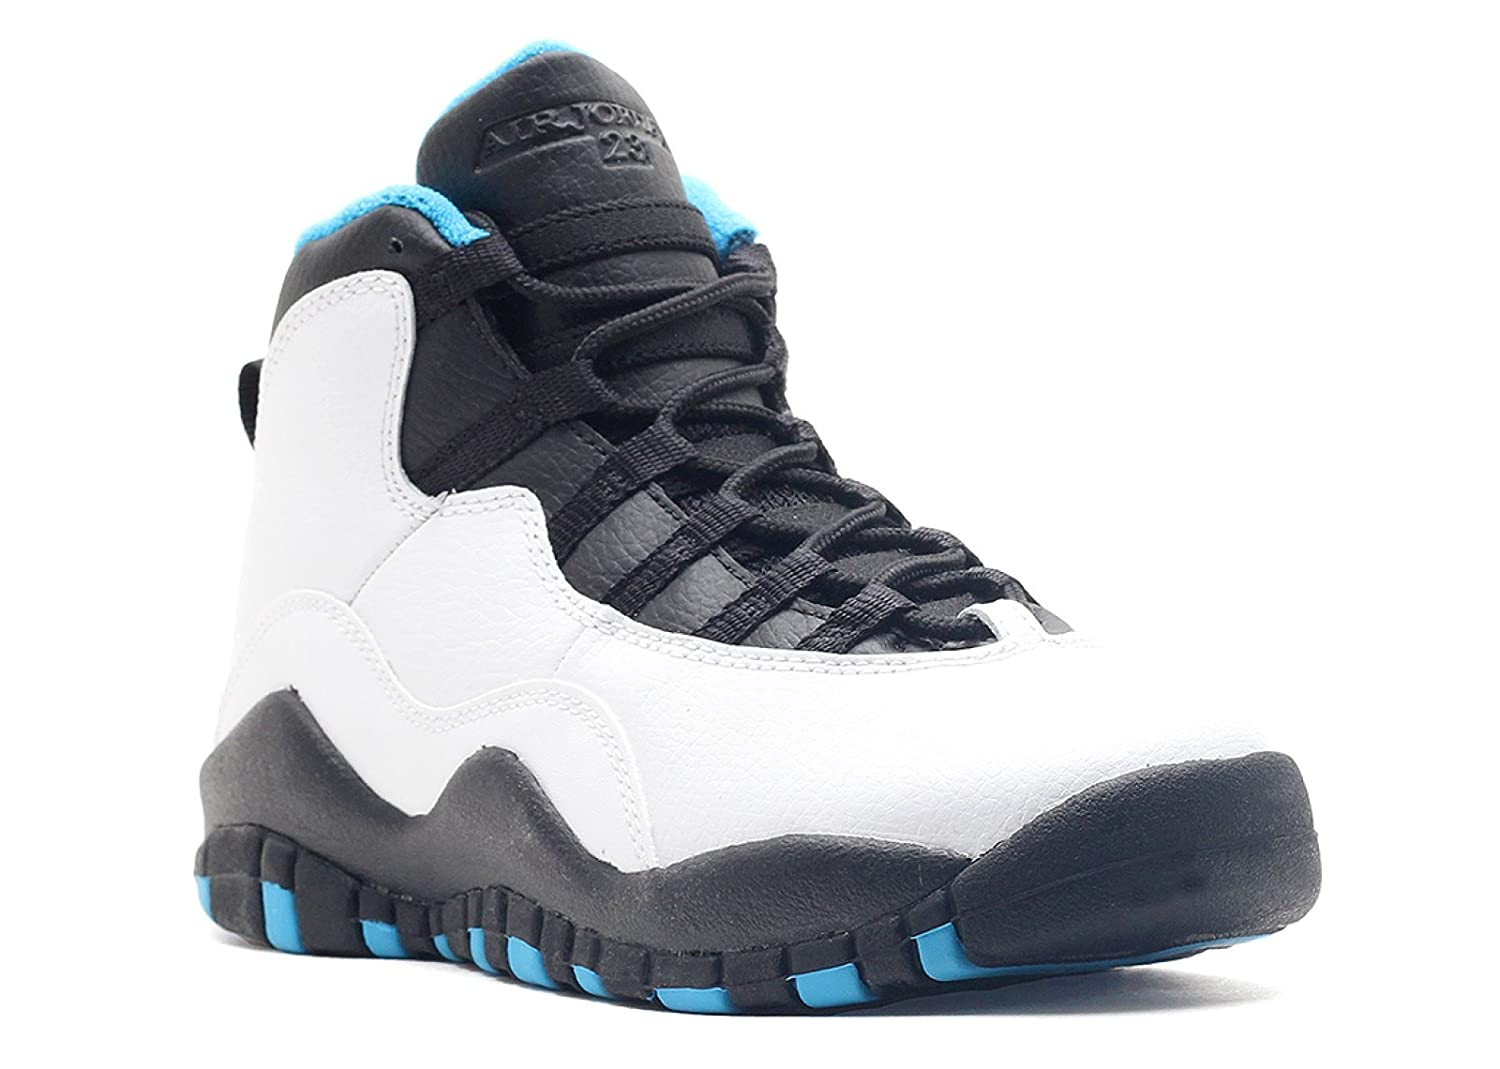 separation shoes 3e8d9 c25cc Amazon.com | Nike Air Jordan 10 Retro Kids Grade School ...